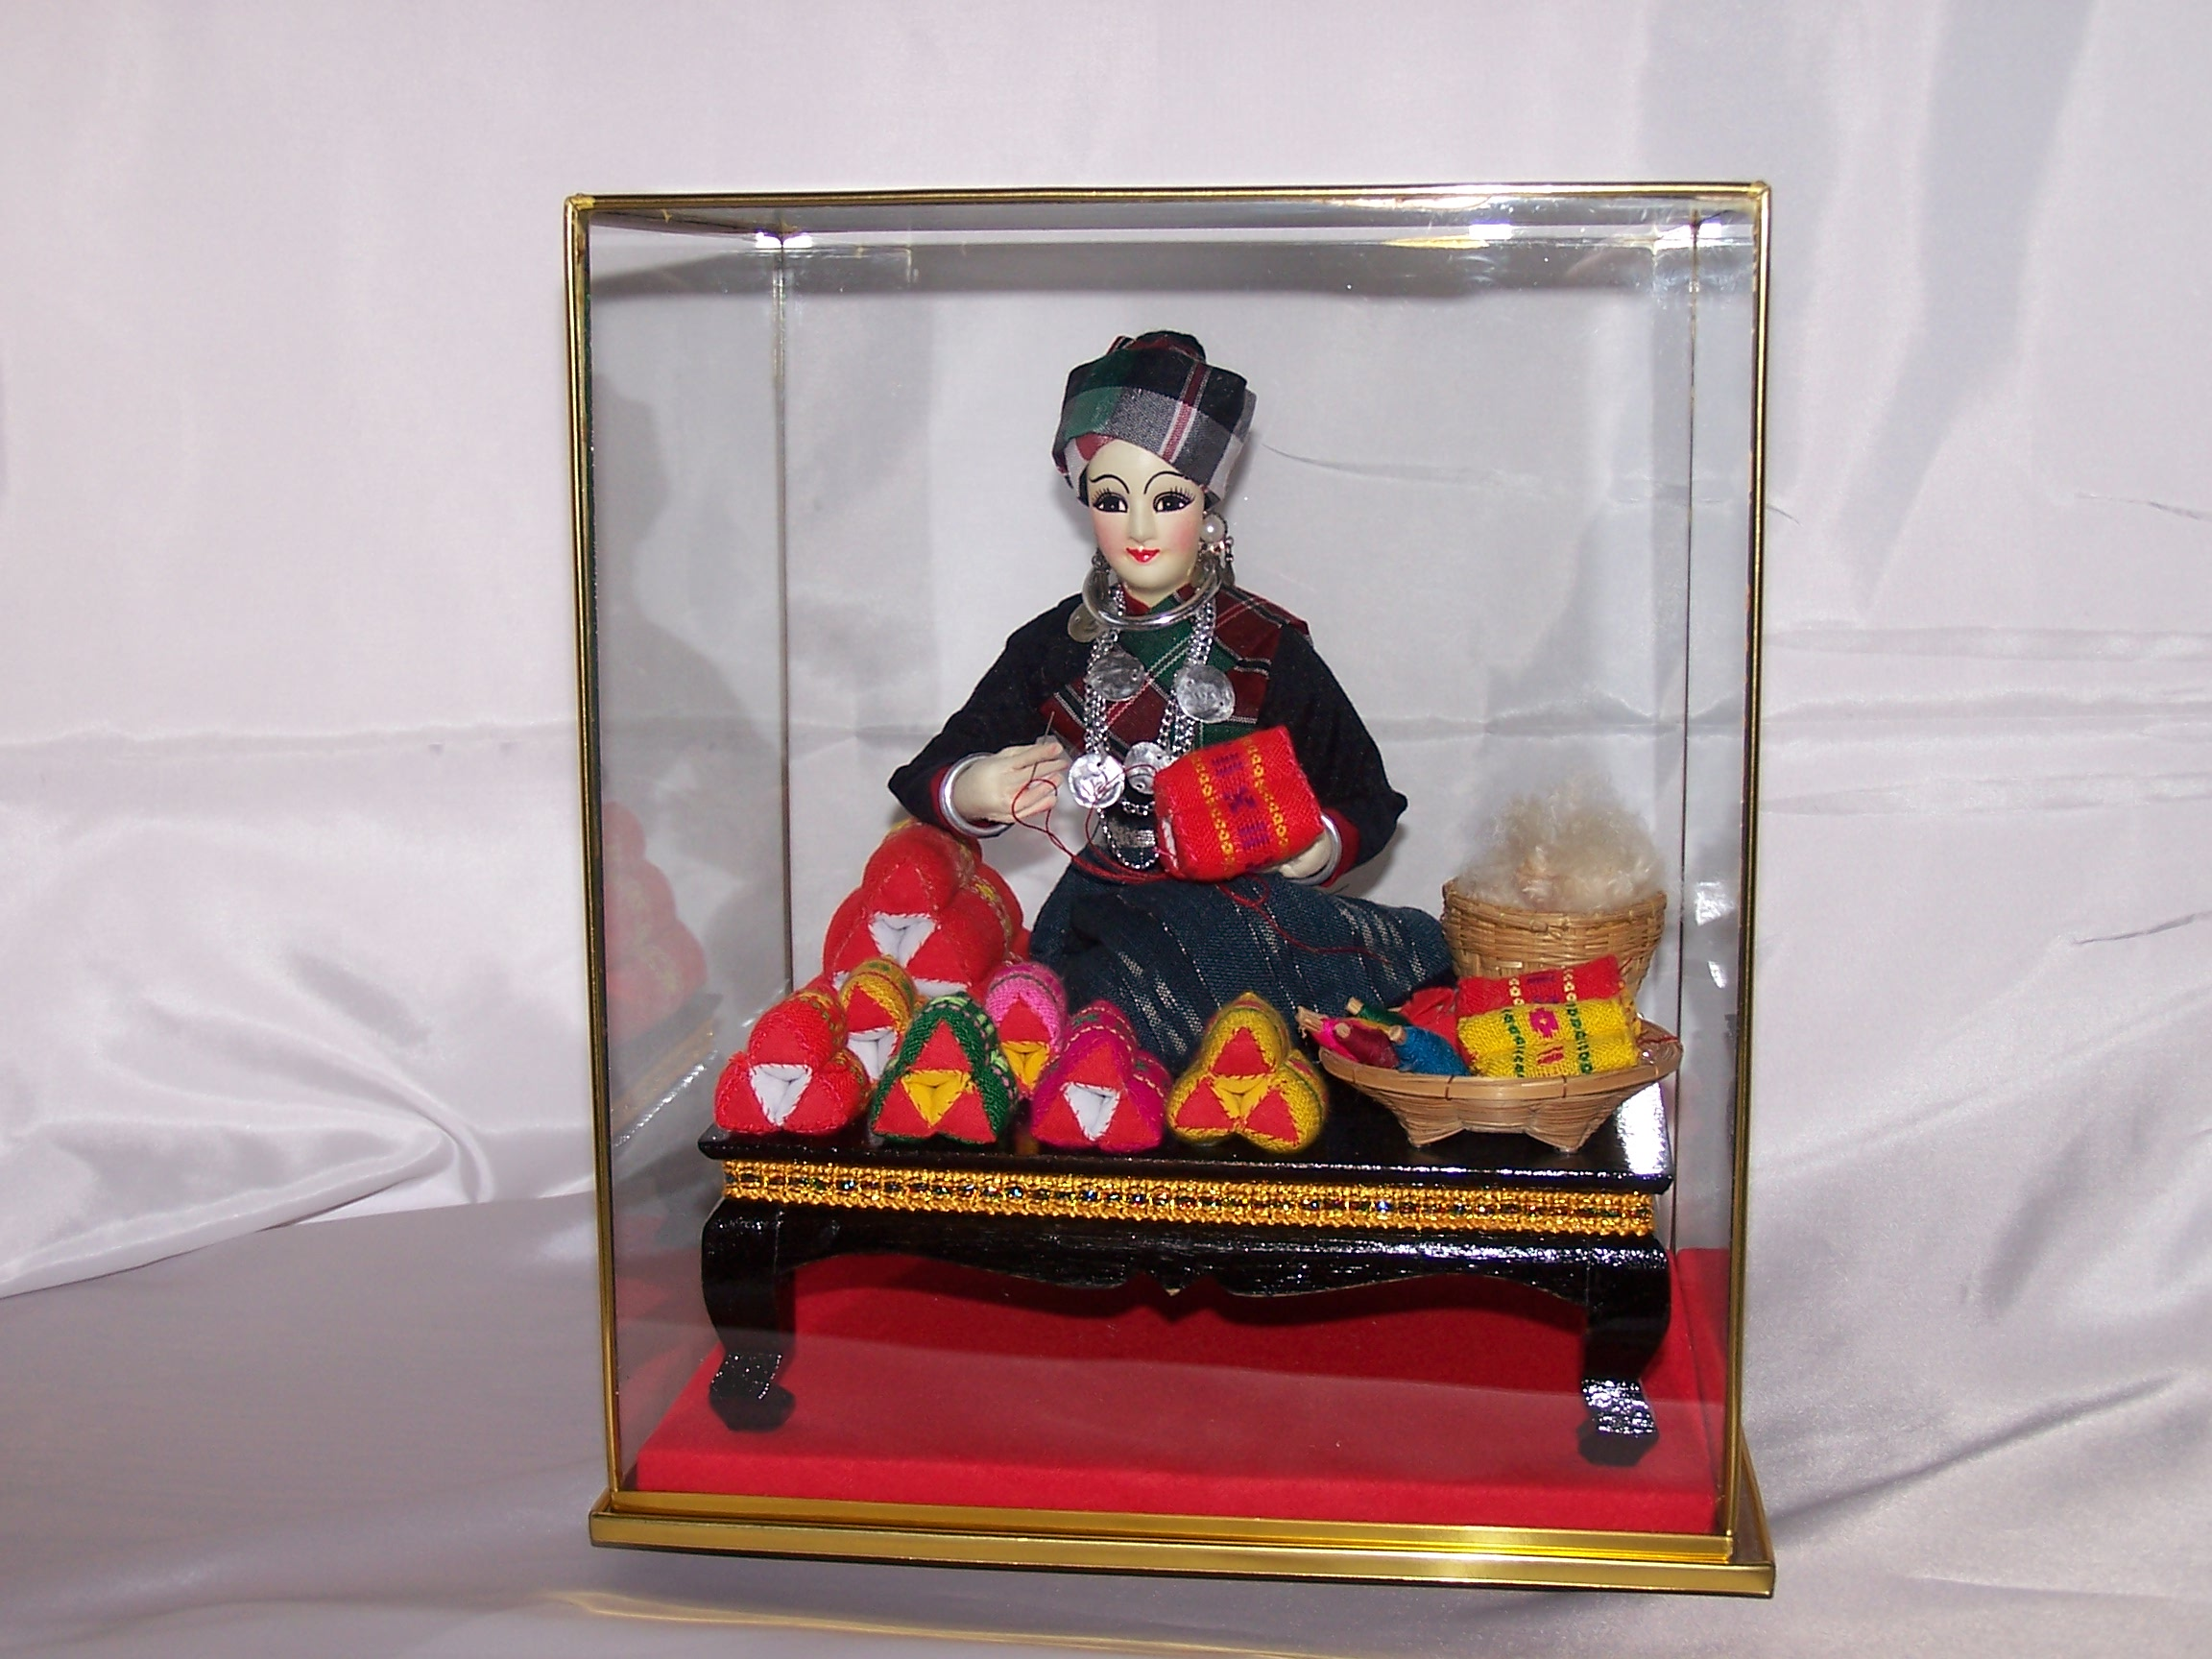 Image 8 of Oriental Seamstress Doll in Case